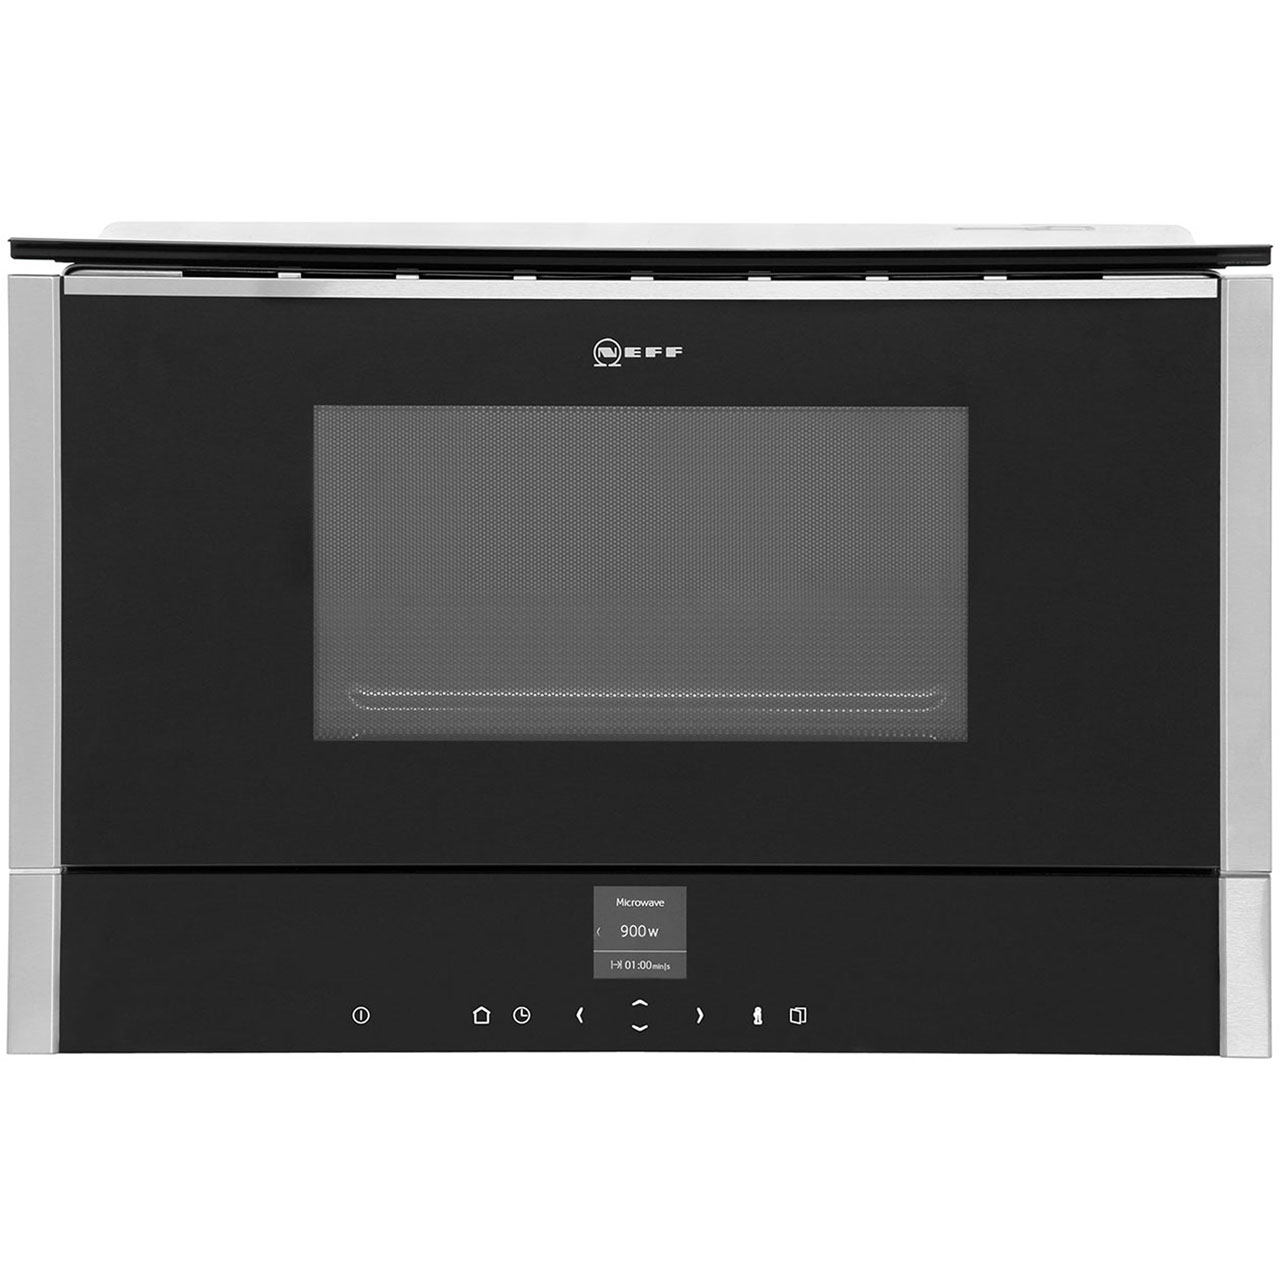 NEFF C17WR00N0B Built in microwave oven